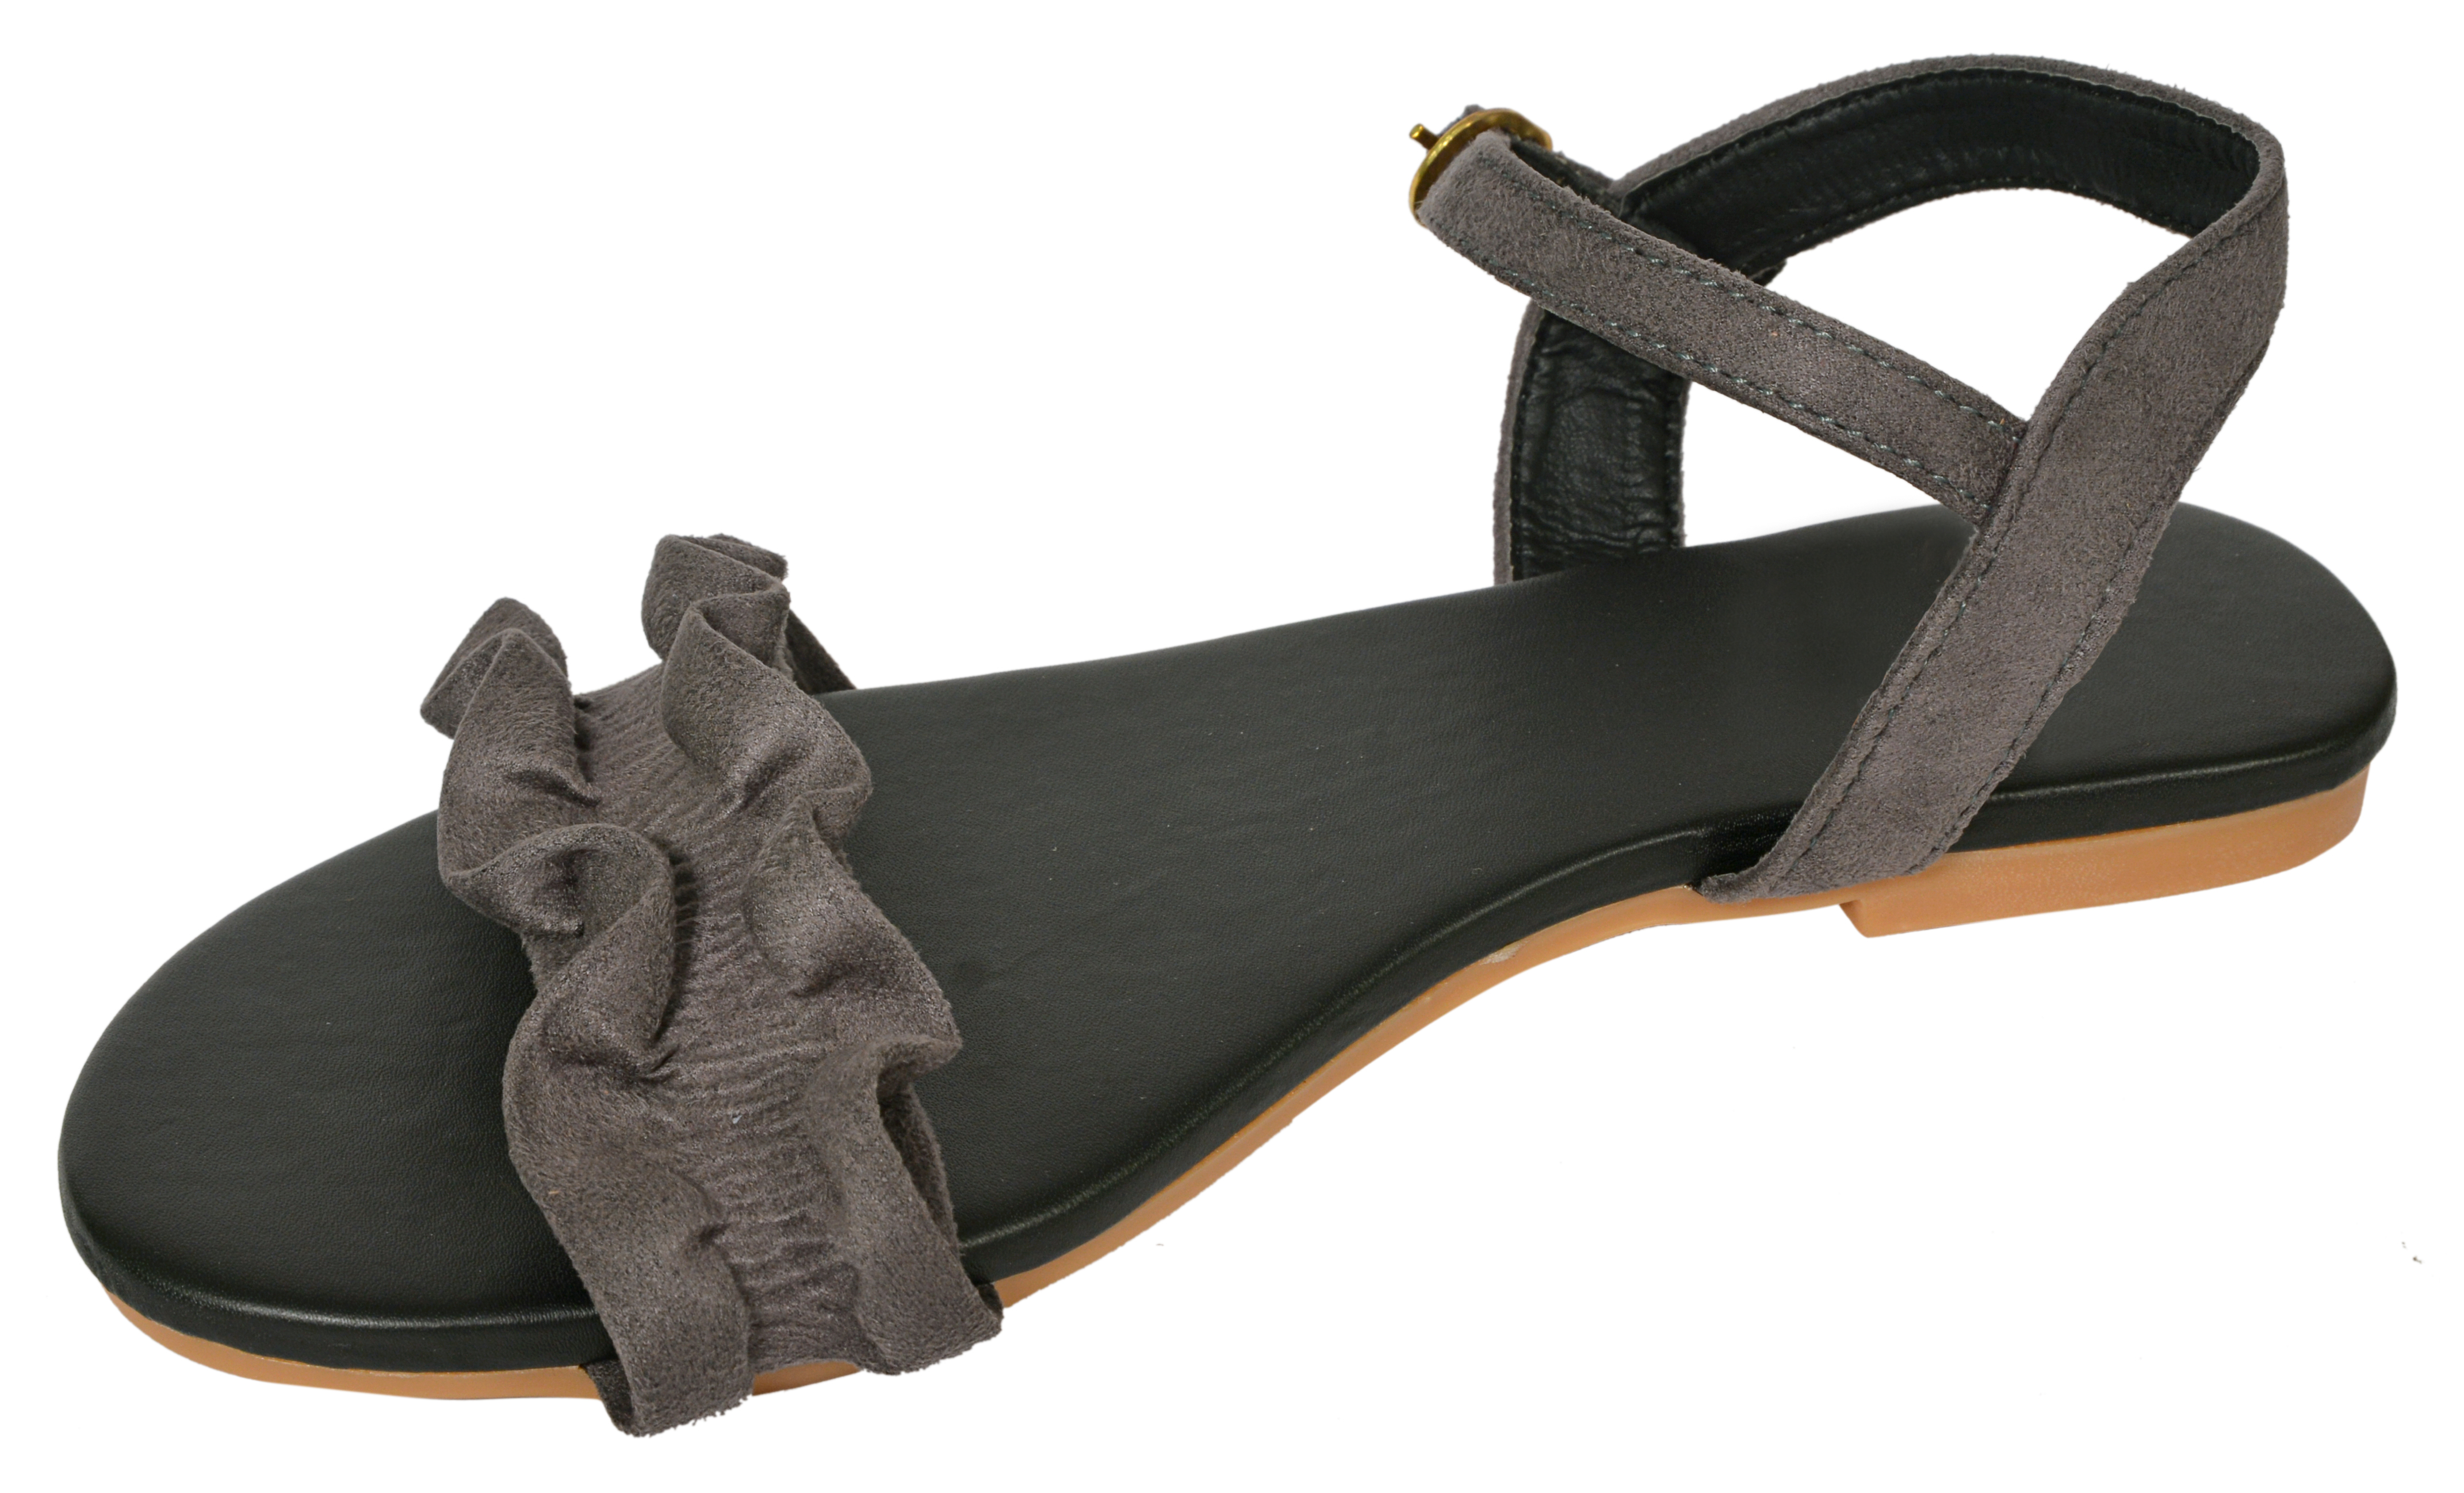 Gibelle Pretty Synthetic Leather Grey Women's Flat Sandal GWF-041-GR (Grey, 36-40, 5 PAIR)